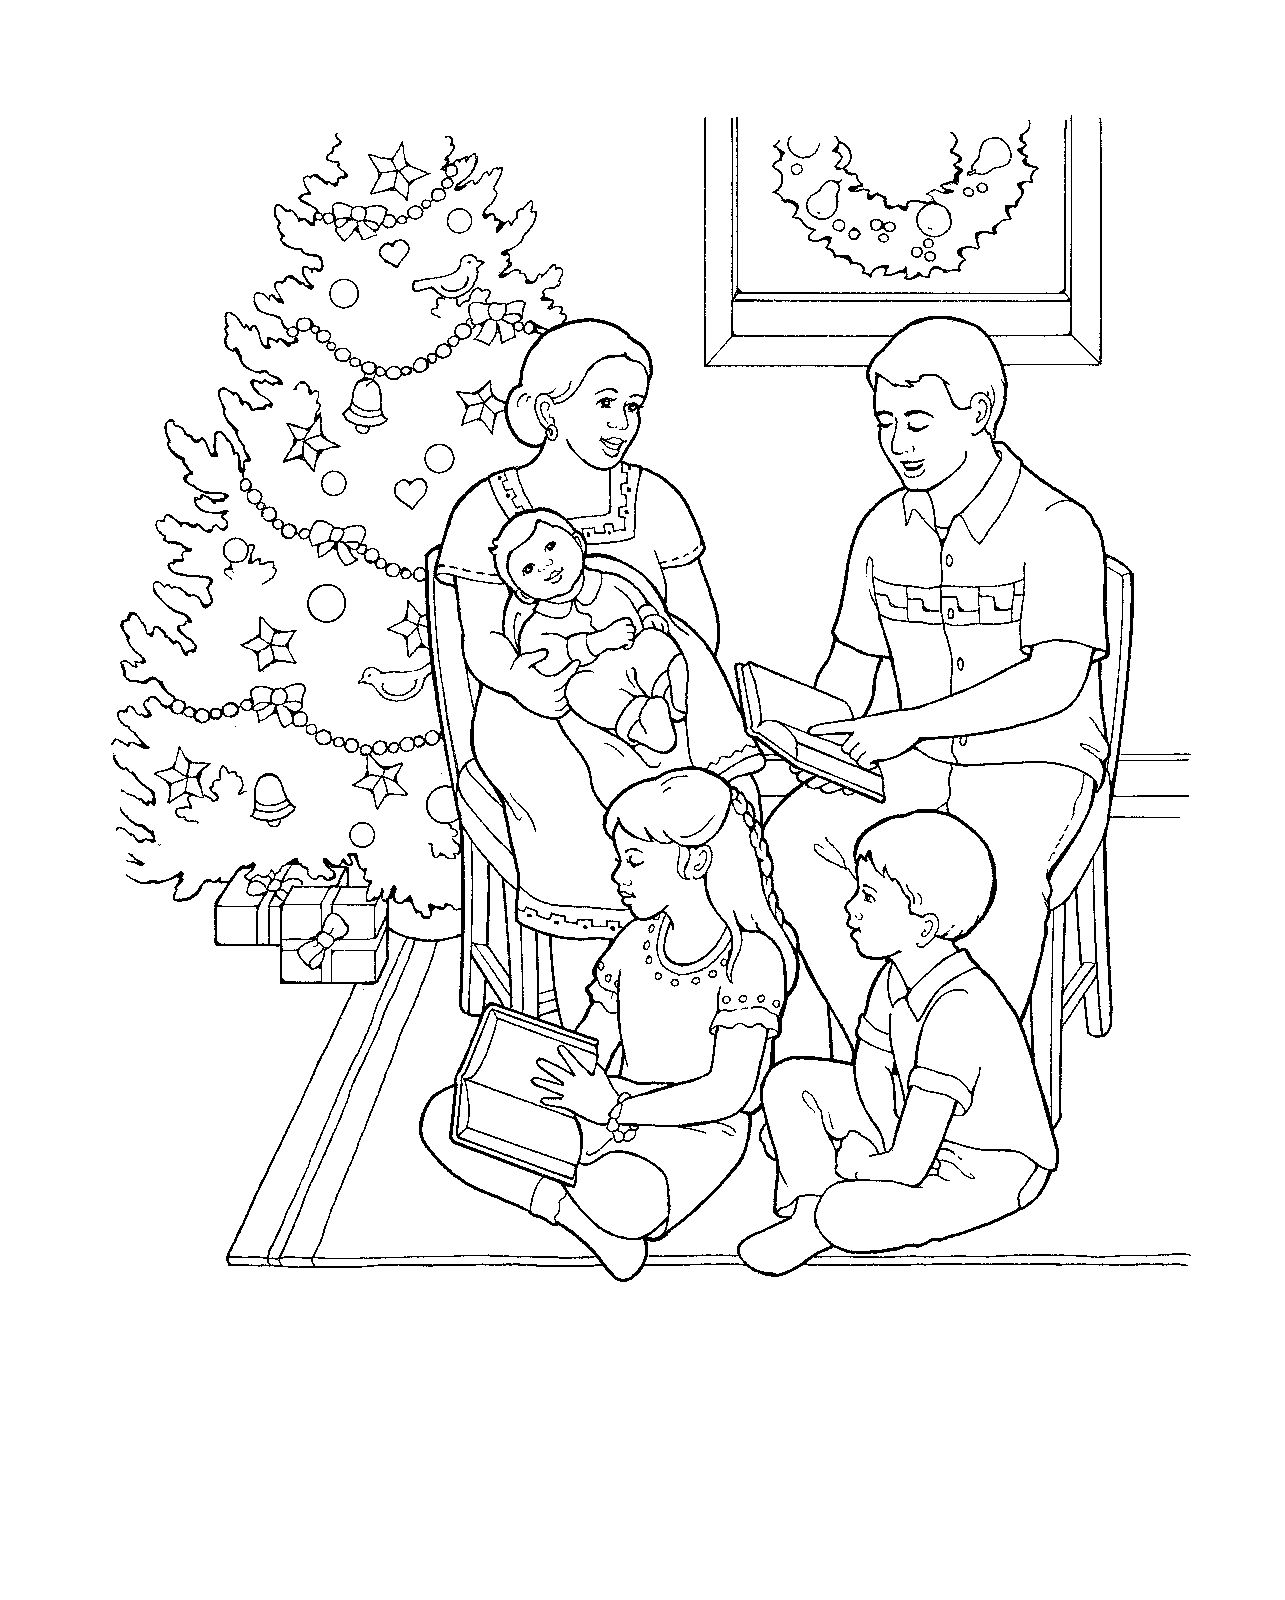 A Family At Christmas Coloring Page For Primary Kids From Lds Org Ldsprimary Http Www Lds Org Coloring Pages Christmas Coloring Pages Adult Coloring Pages